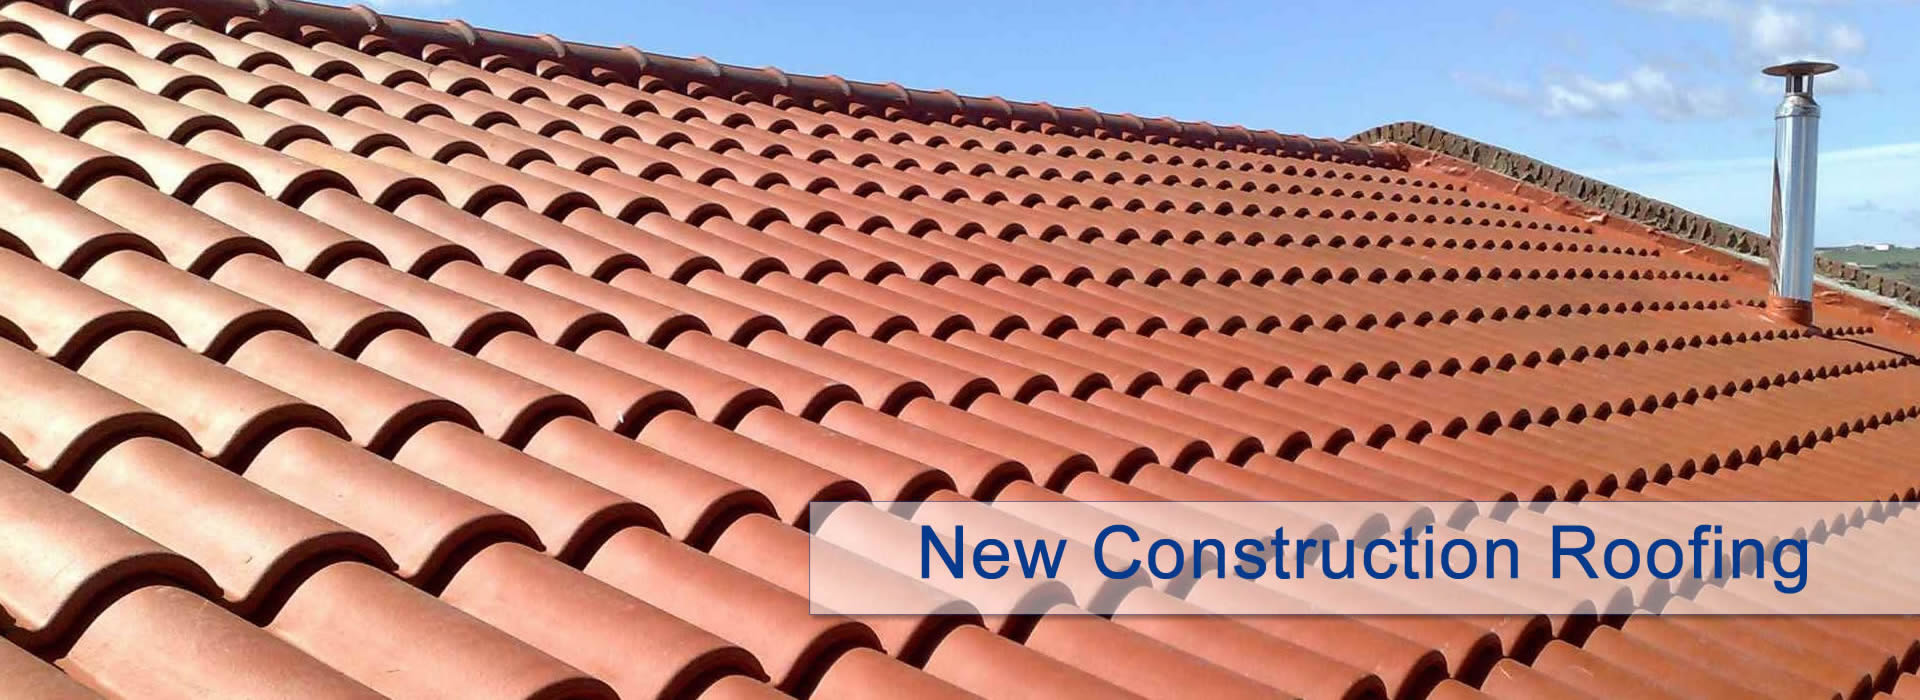 New Construction Roofing Dallas